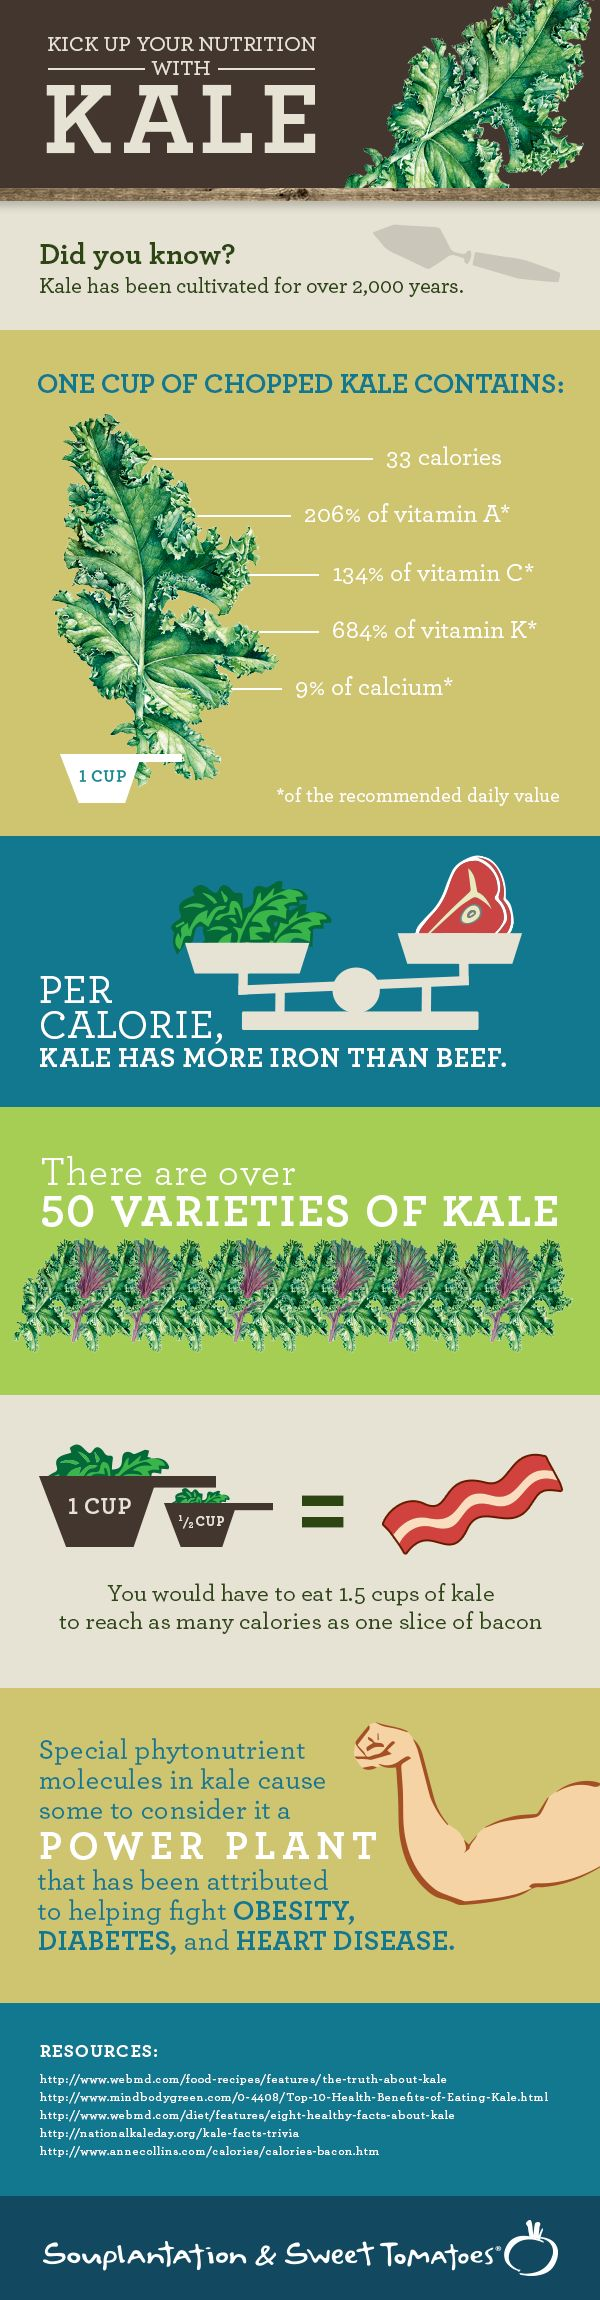 Kick up Your Nutrition with Kale ....... From lowering cholesterol to boosting your immune system and helping eye function, kale is not only delicious, it's a superfood..... kur <3